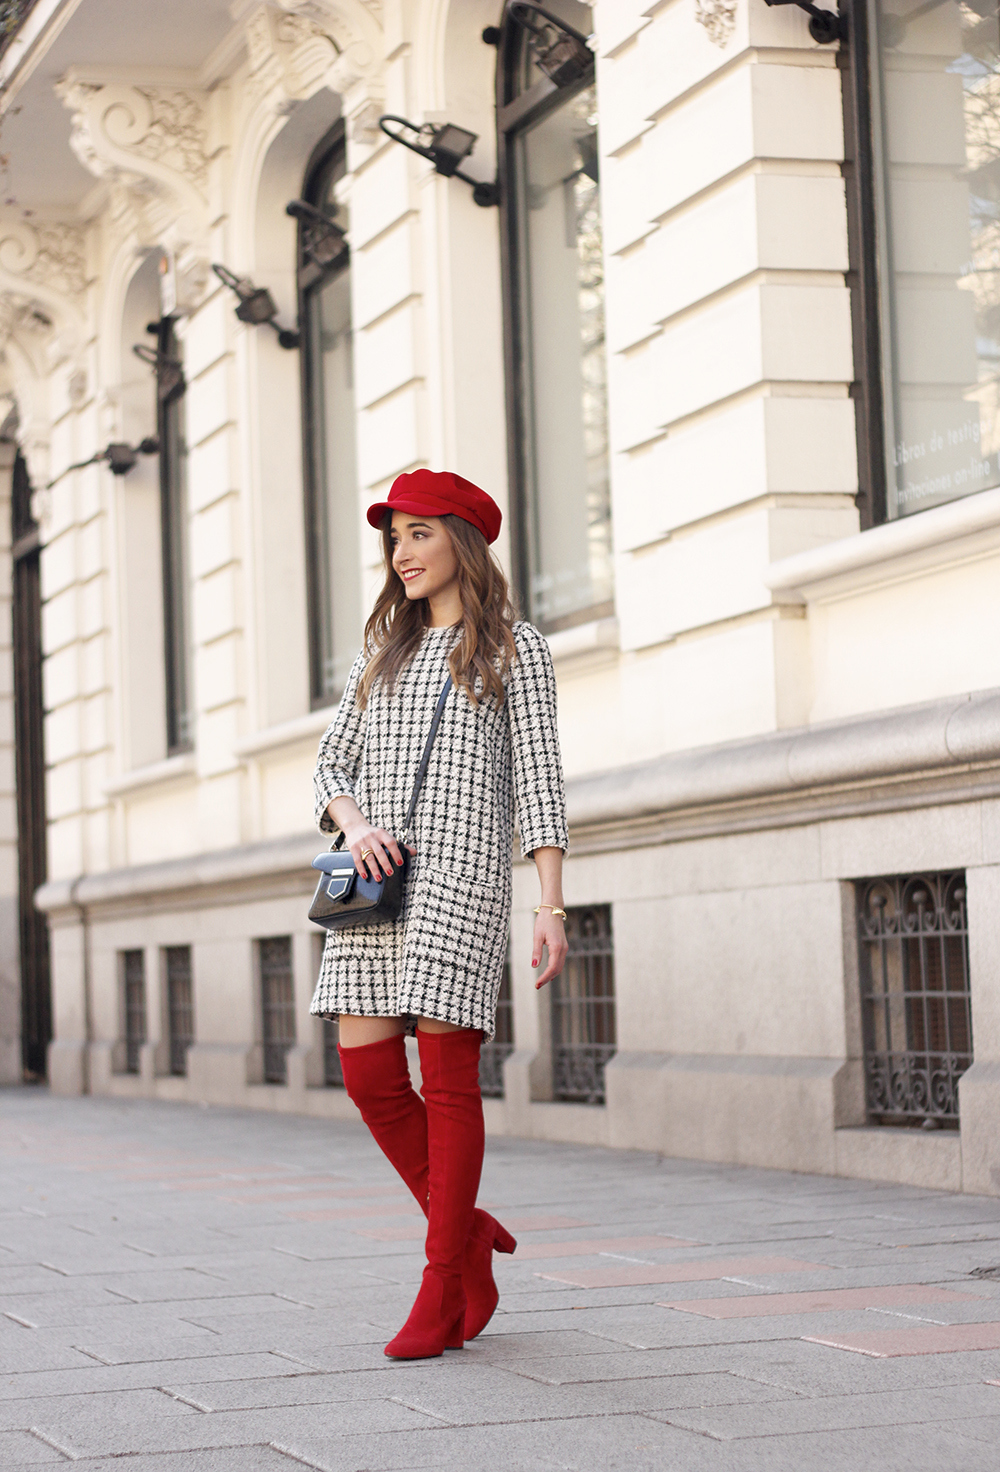 squares dress red over the knee boots givenchy bag red cap winter outfit look invierno04